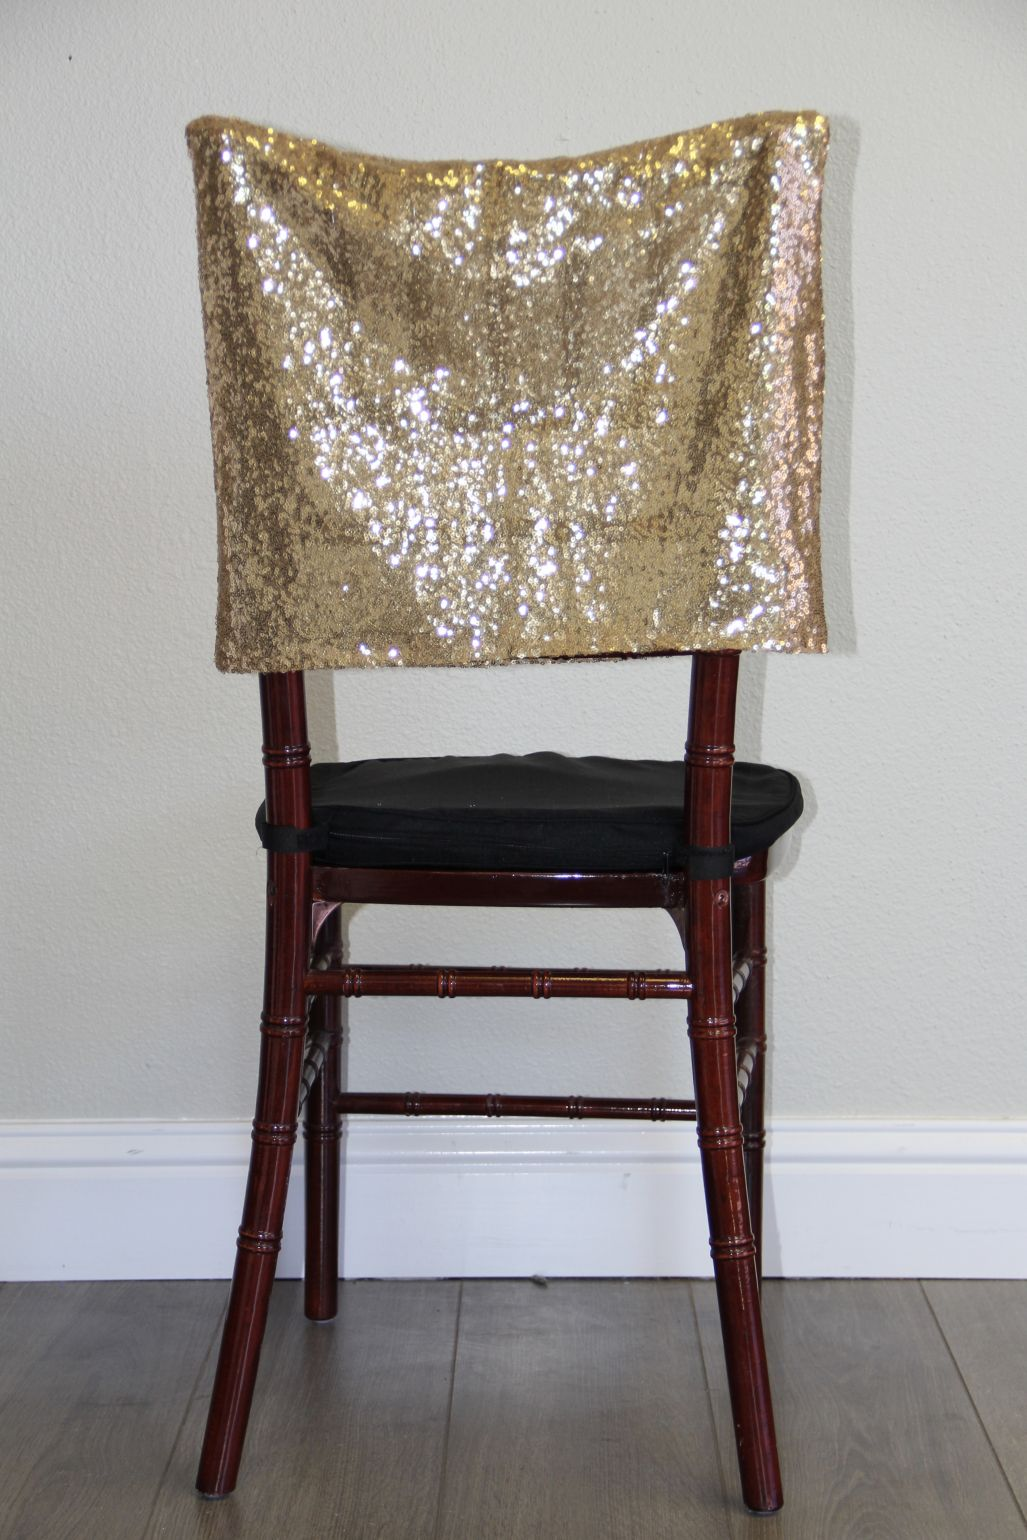 Miraculous Gold Sequin Chair Toppers Alphanode Cool Chair Designs And Ideas Alphanodeonline